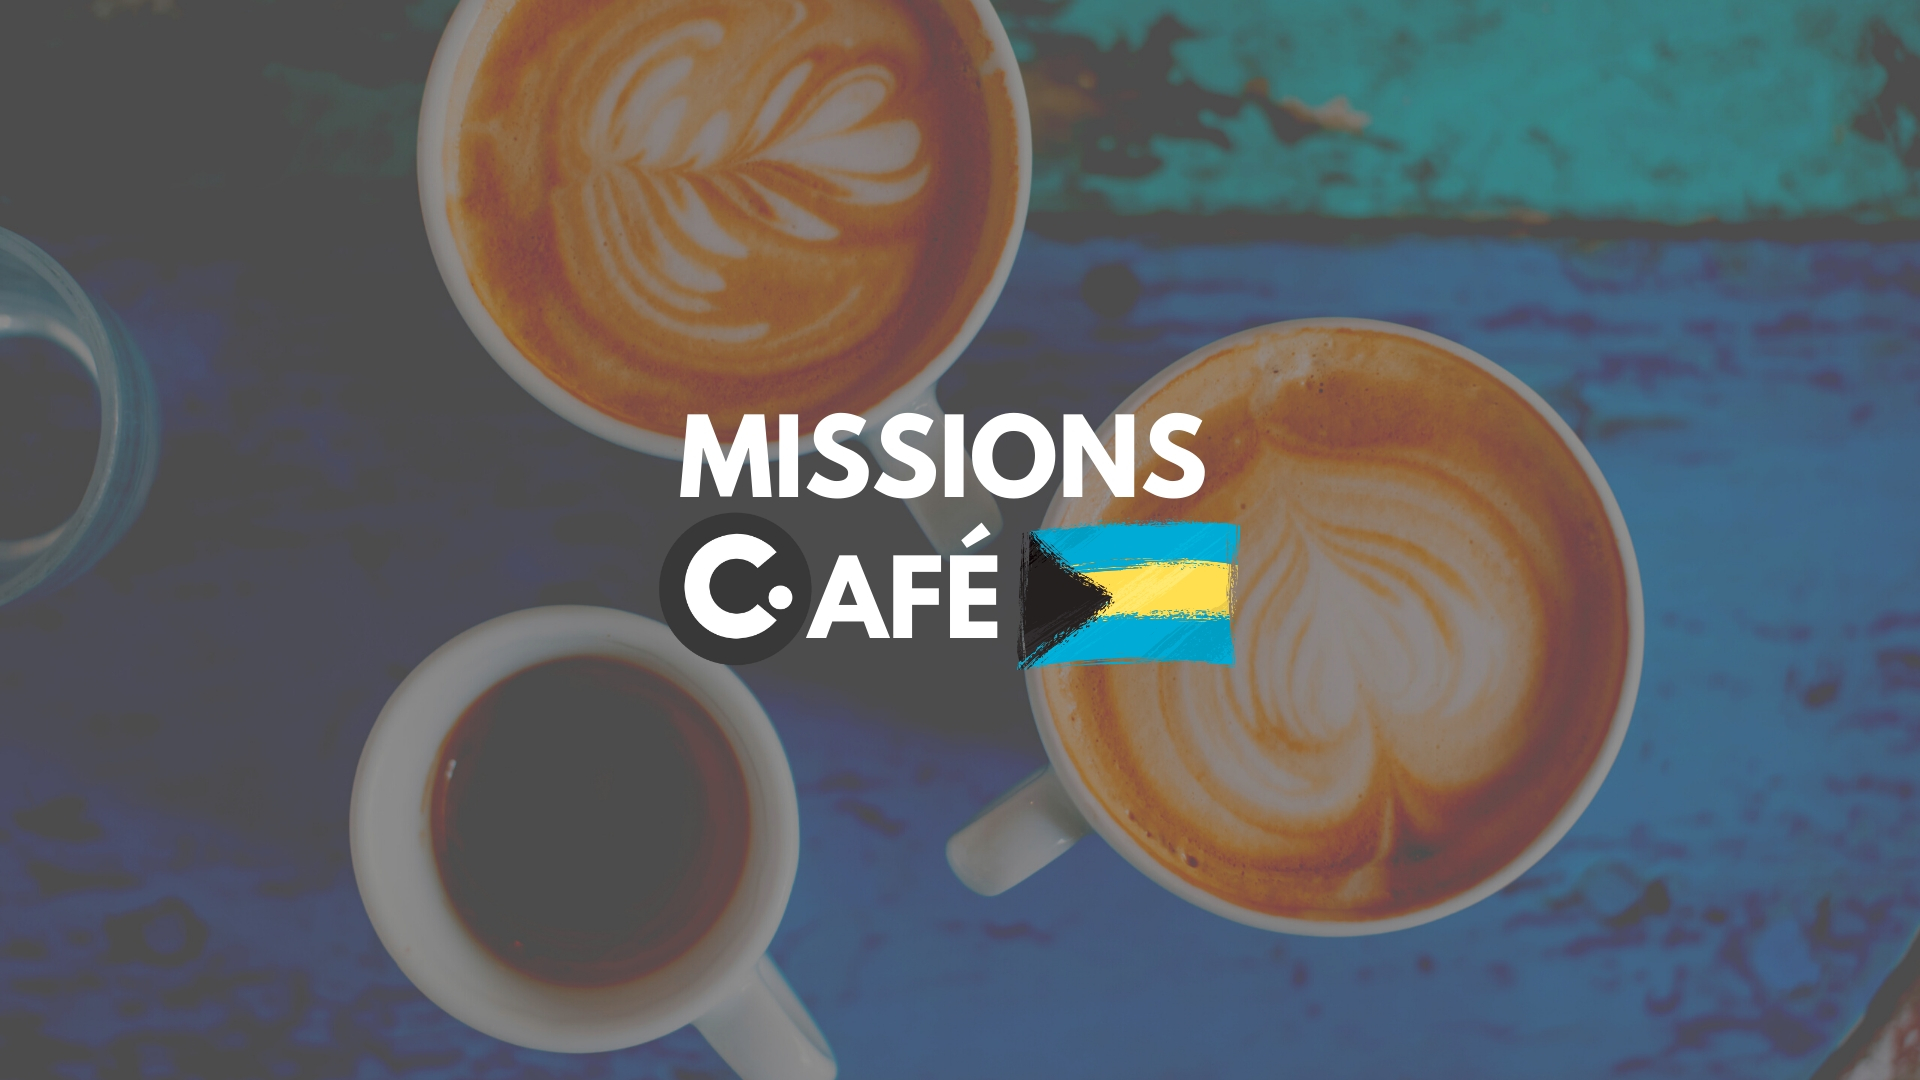 Missions Cafe